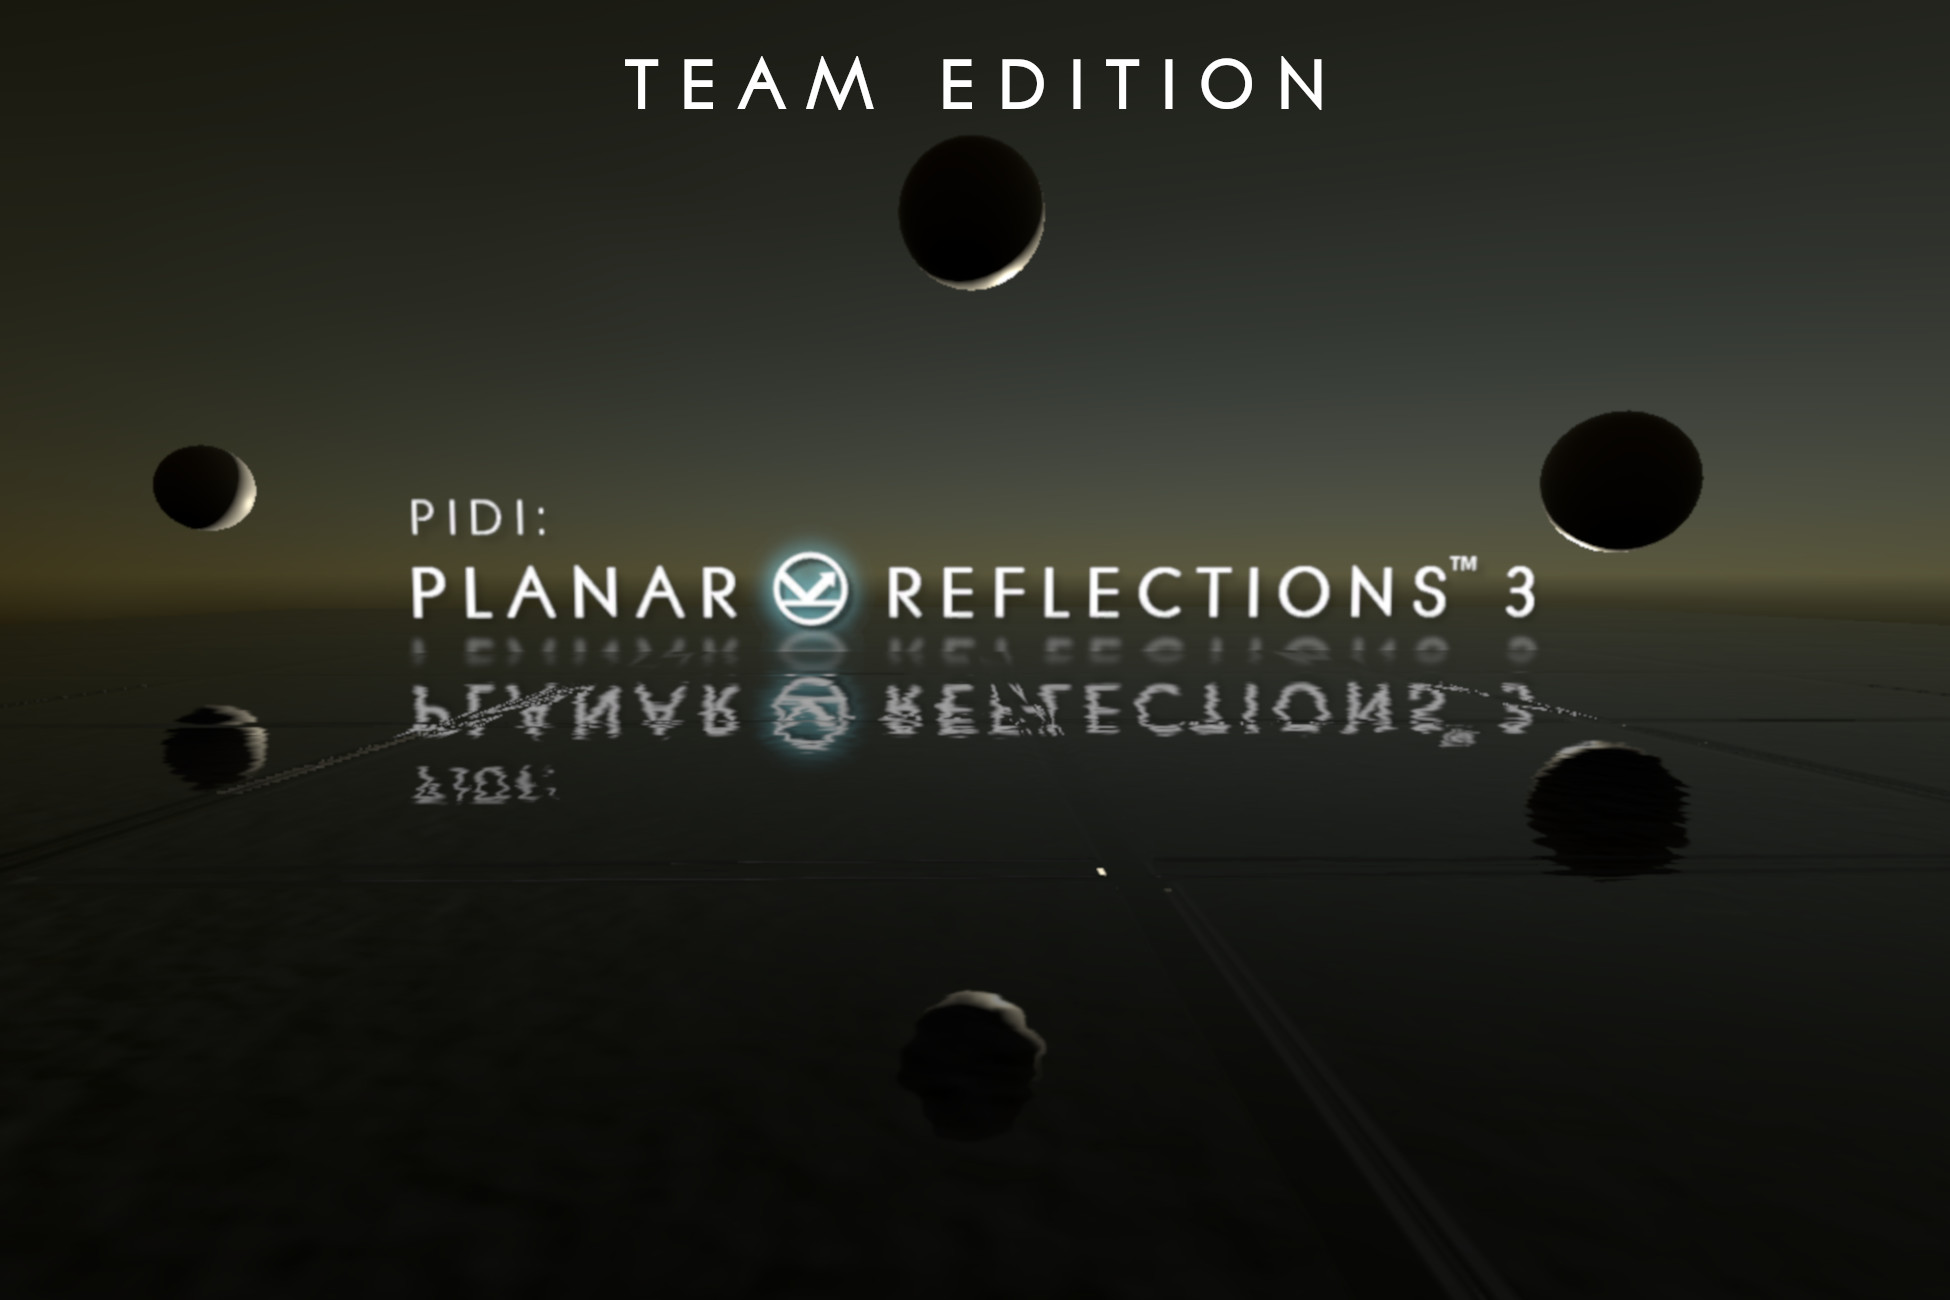 PIDI : Planar Reflections 3 - Team Edition